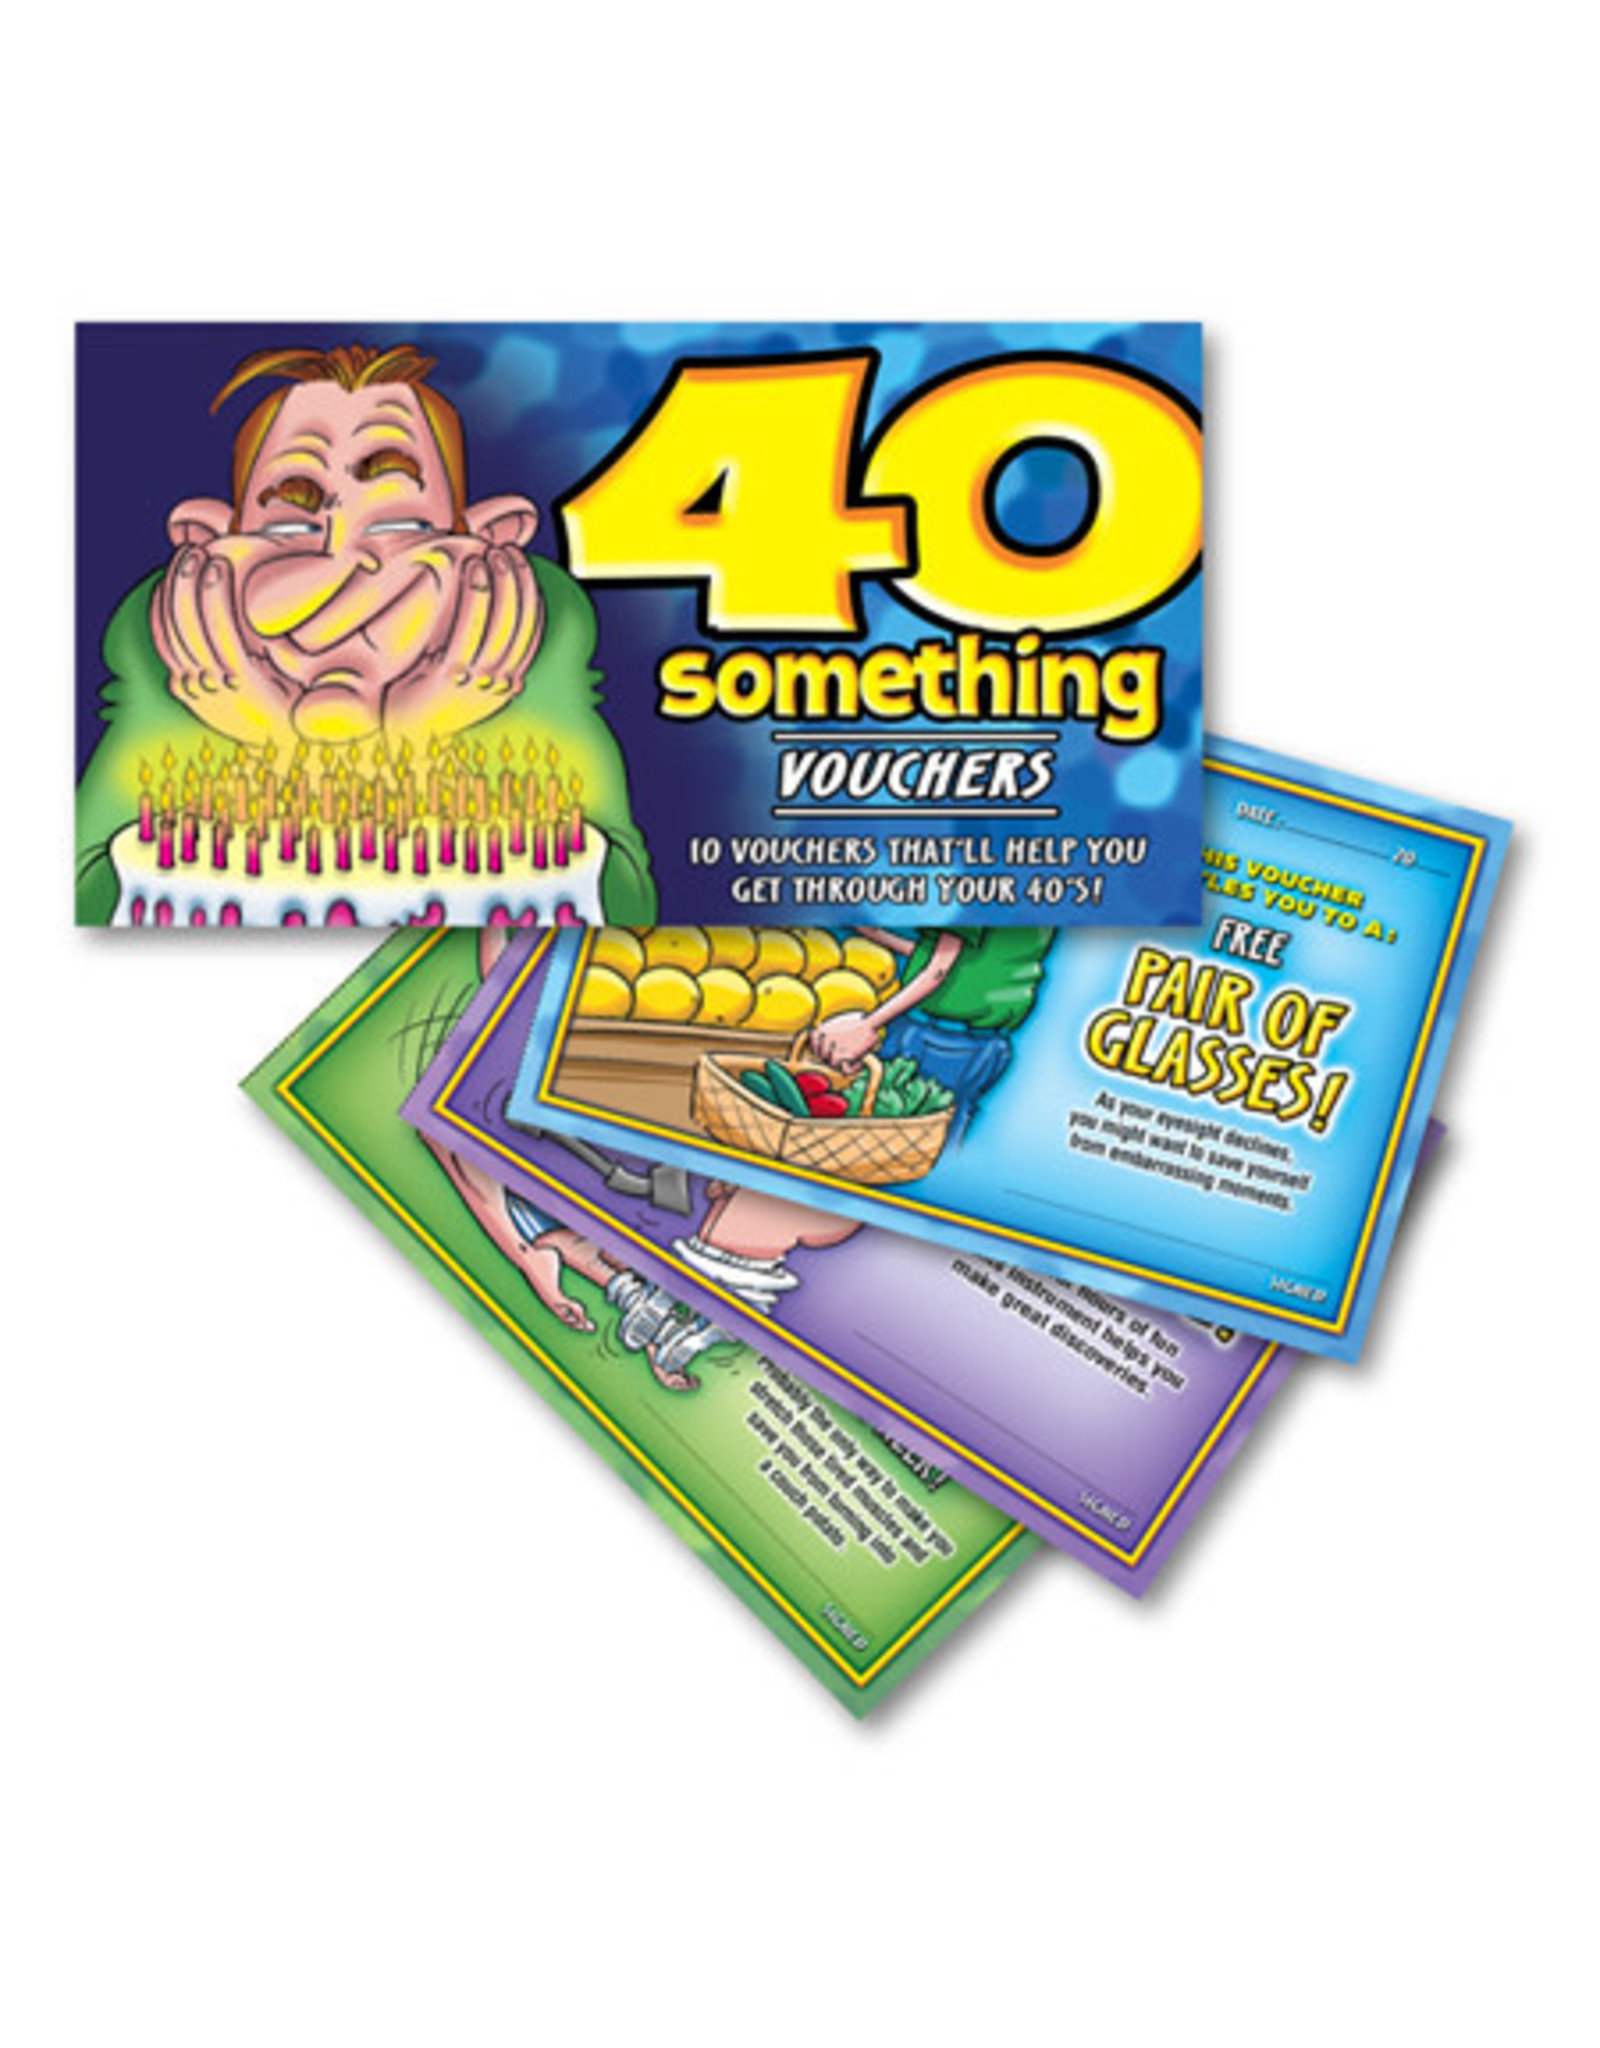 Ozze Creations 40 Something Vouchers - For Him